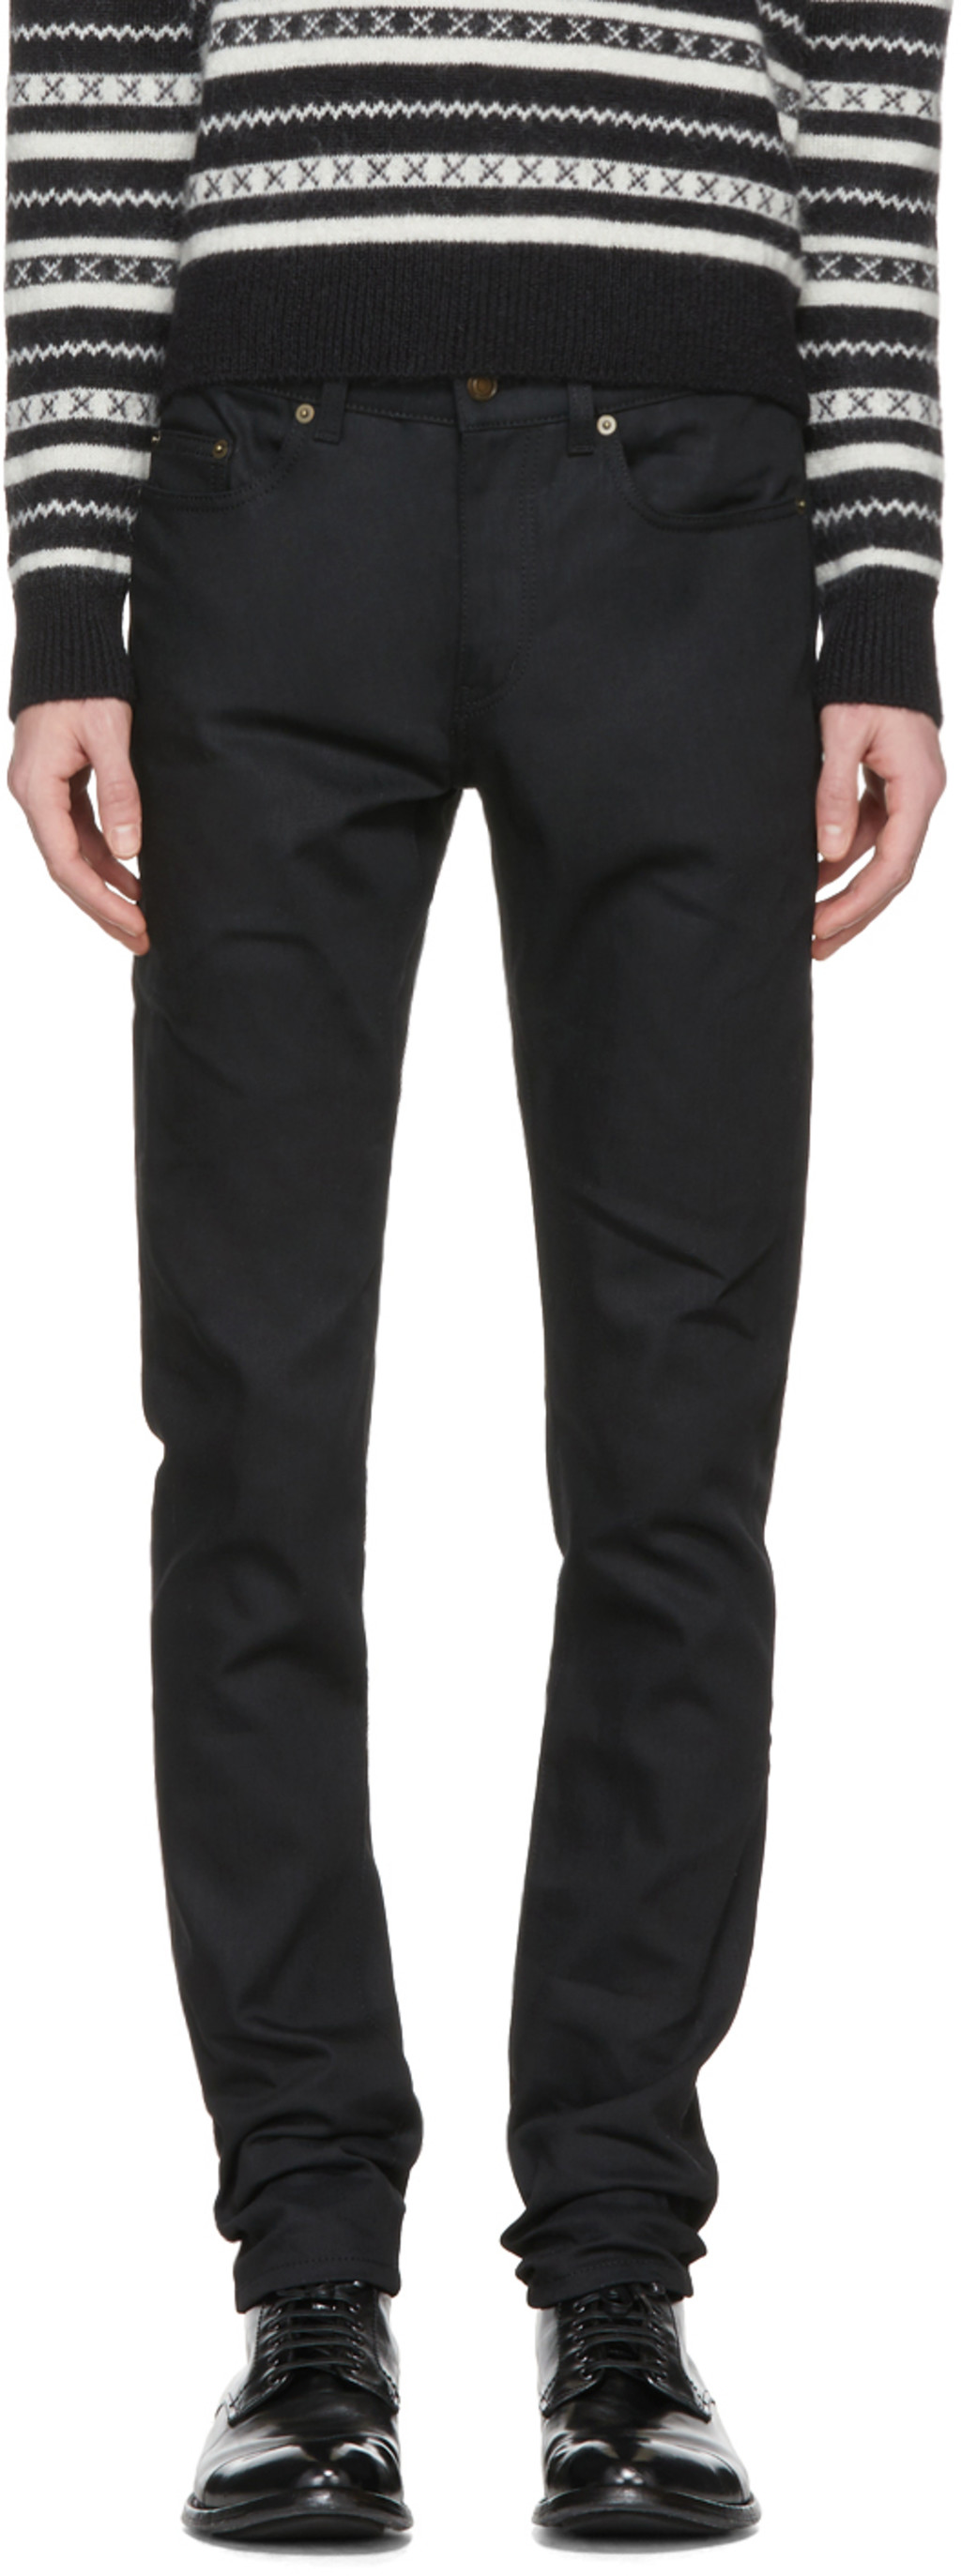 Cheap Sale Clearance Shipping Outlet Store Online classic fitted jeans - Black Saint Laurent Orange 100% Original Discount With Mastercard For Nice Cheap Online 7SkpG